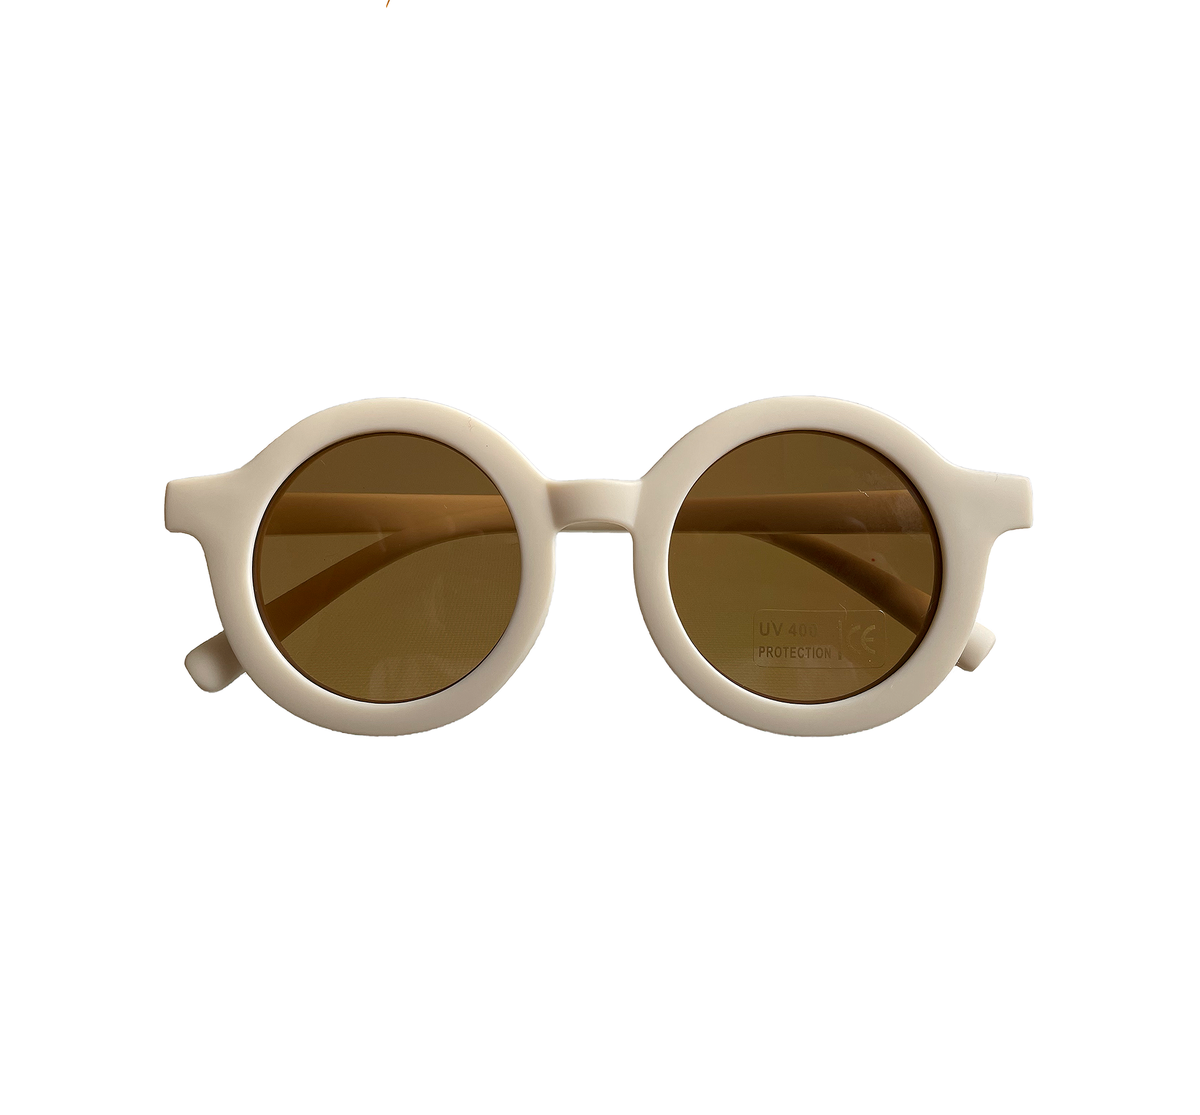 Image of Toddler's Sunglasses. Off White (was £7)